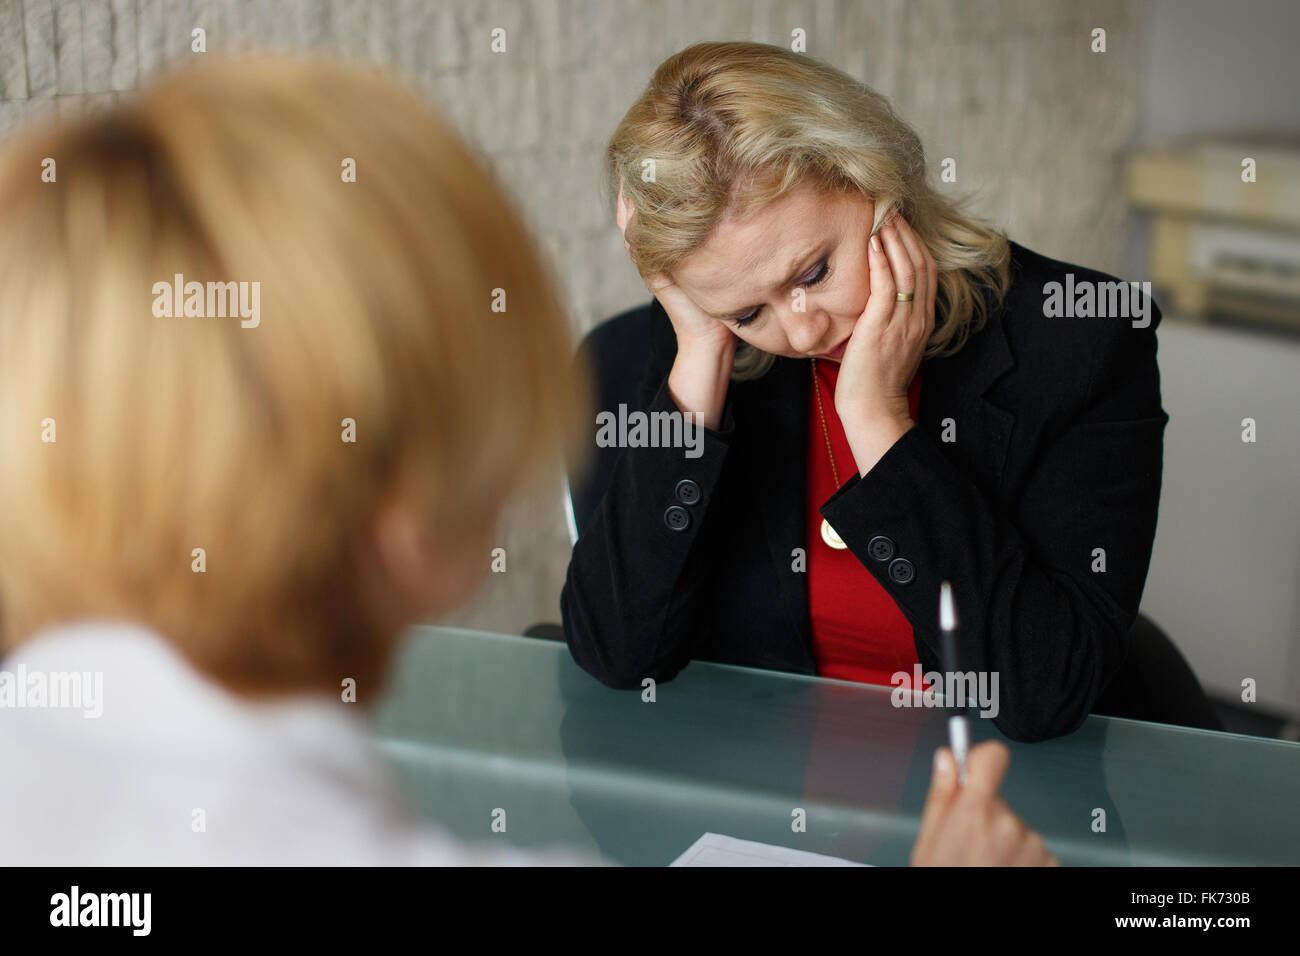 Entrepreneur in bankrupt, business failure, situation in office - Stock Image